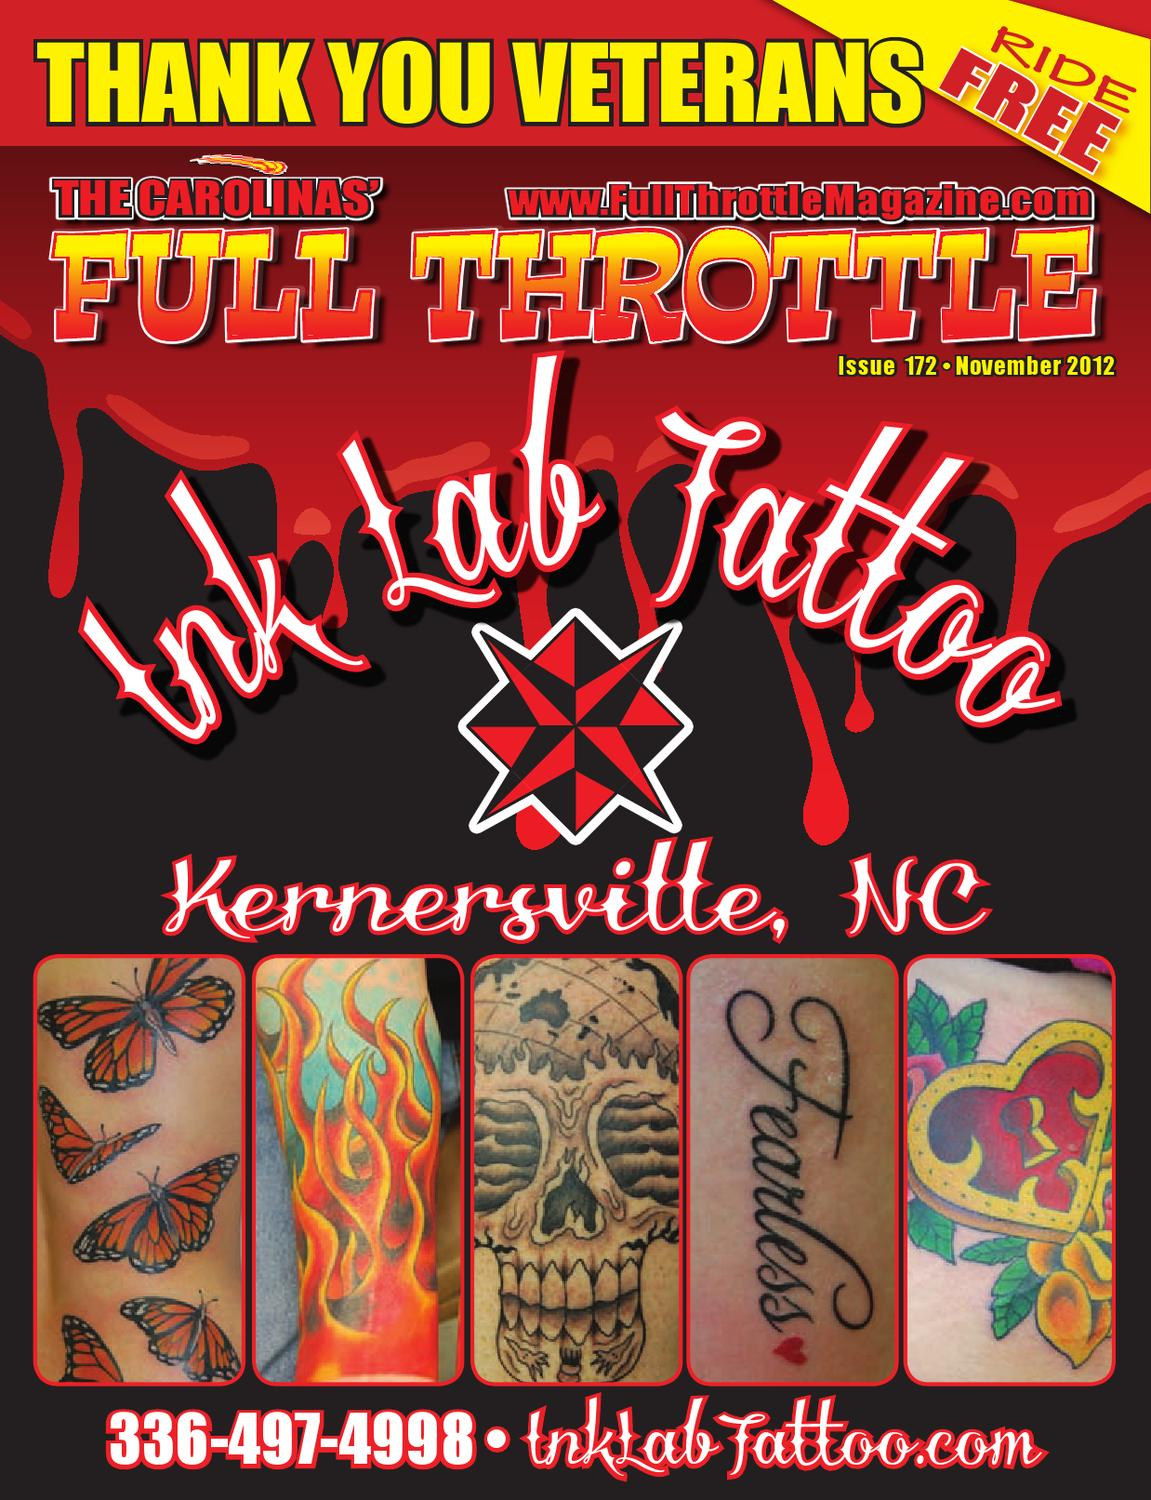 November 2012 issue 172 by the carolinas 39 full throttle - Cruisin carolina magazine ...